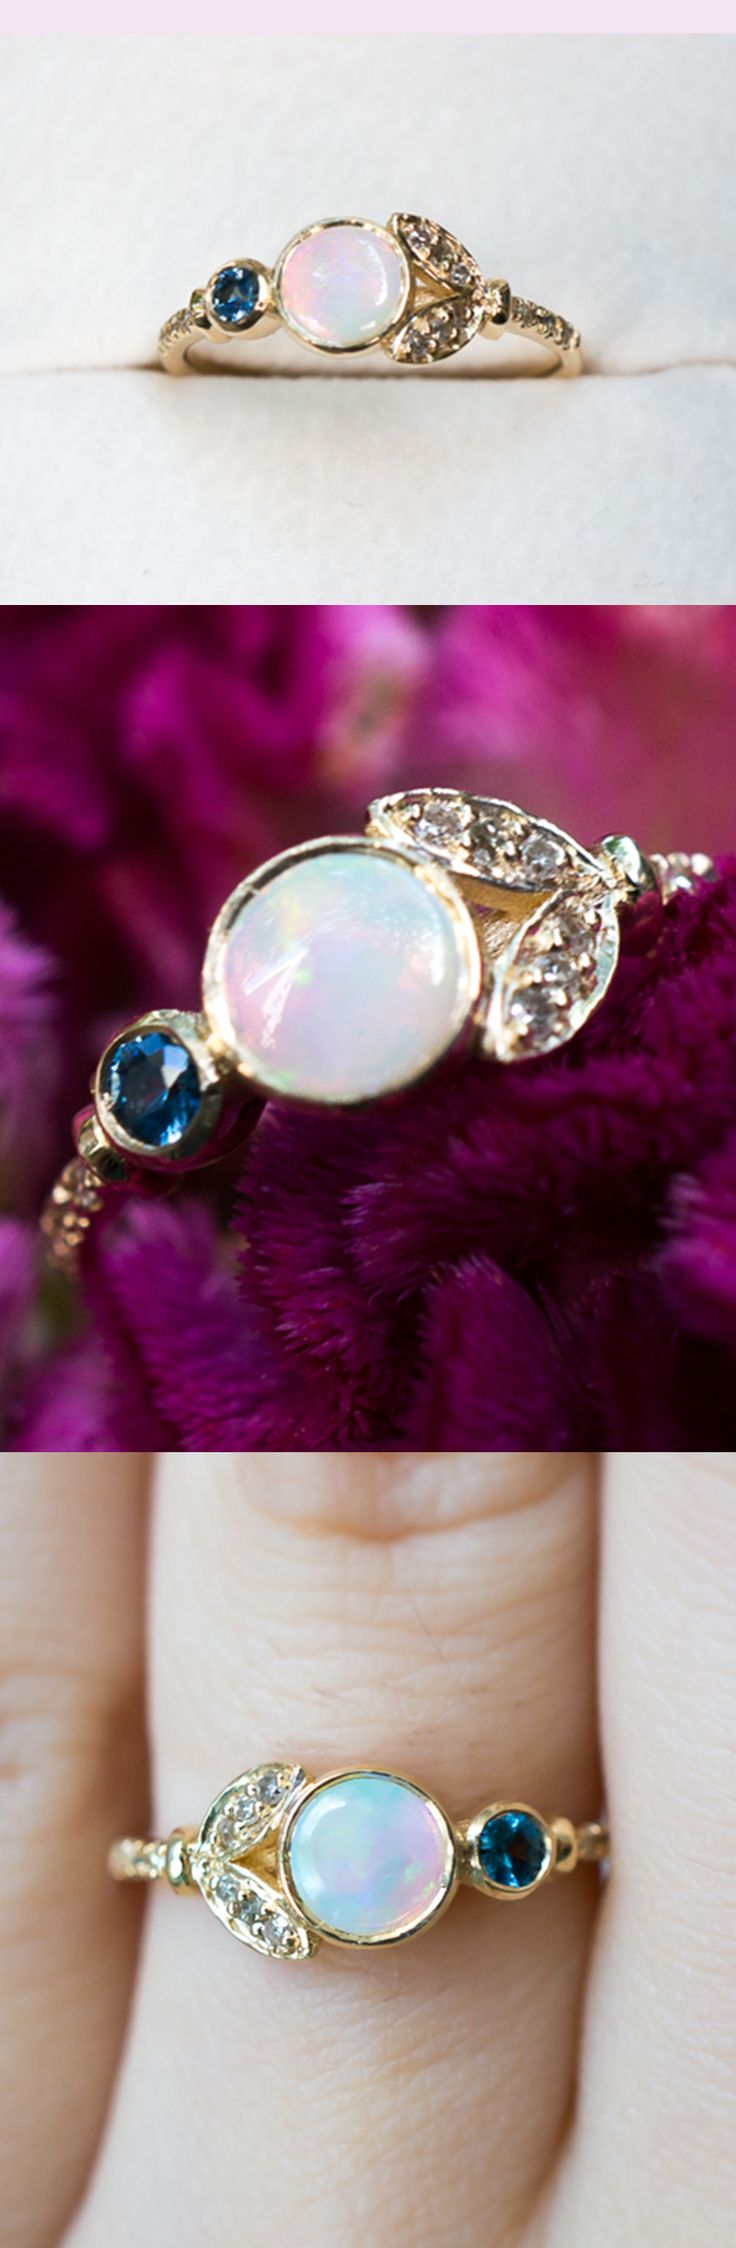 a dreamy Opal flower engagement ring with a sky blue Sapphire and vintage diamonds by S. Kind & Co.